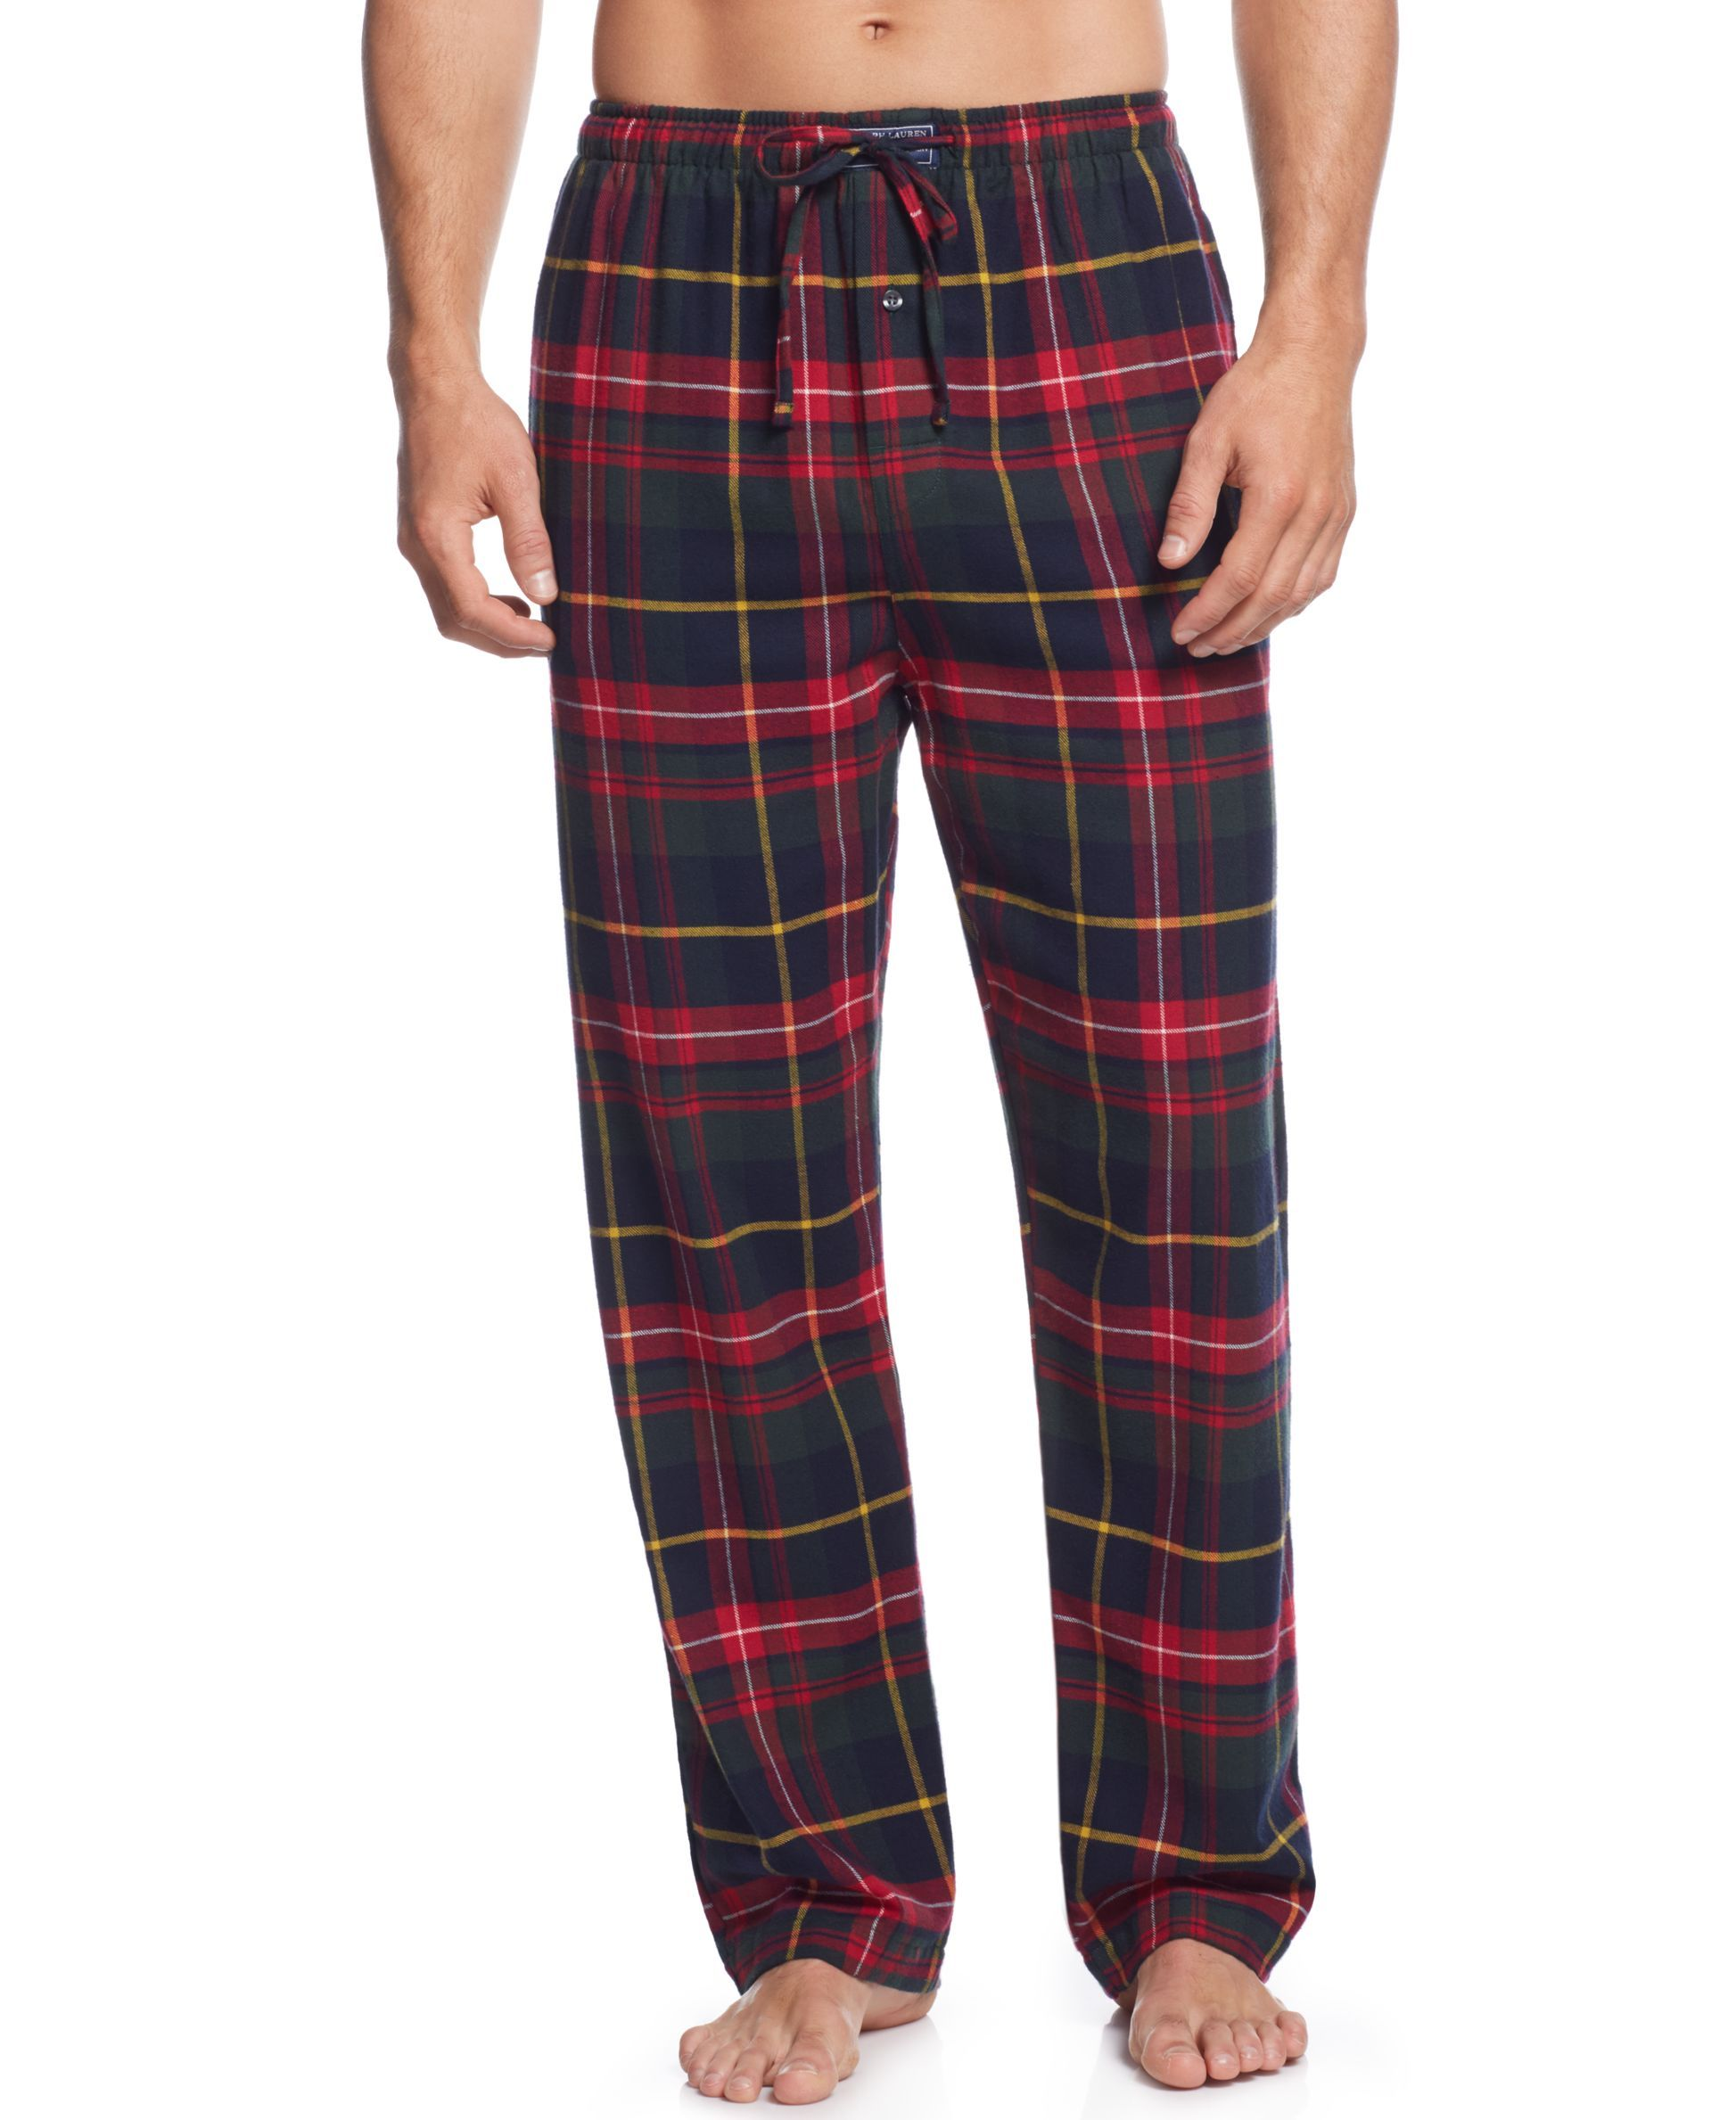 8a764de85e Plaid PJs from Polo Ralph Lauren   his new comfort zone.